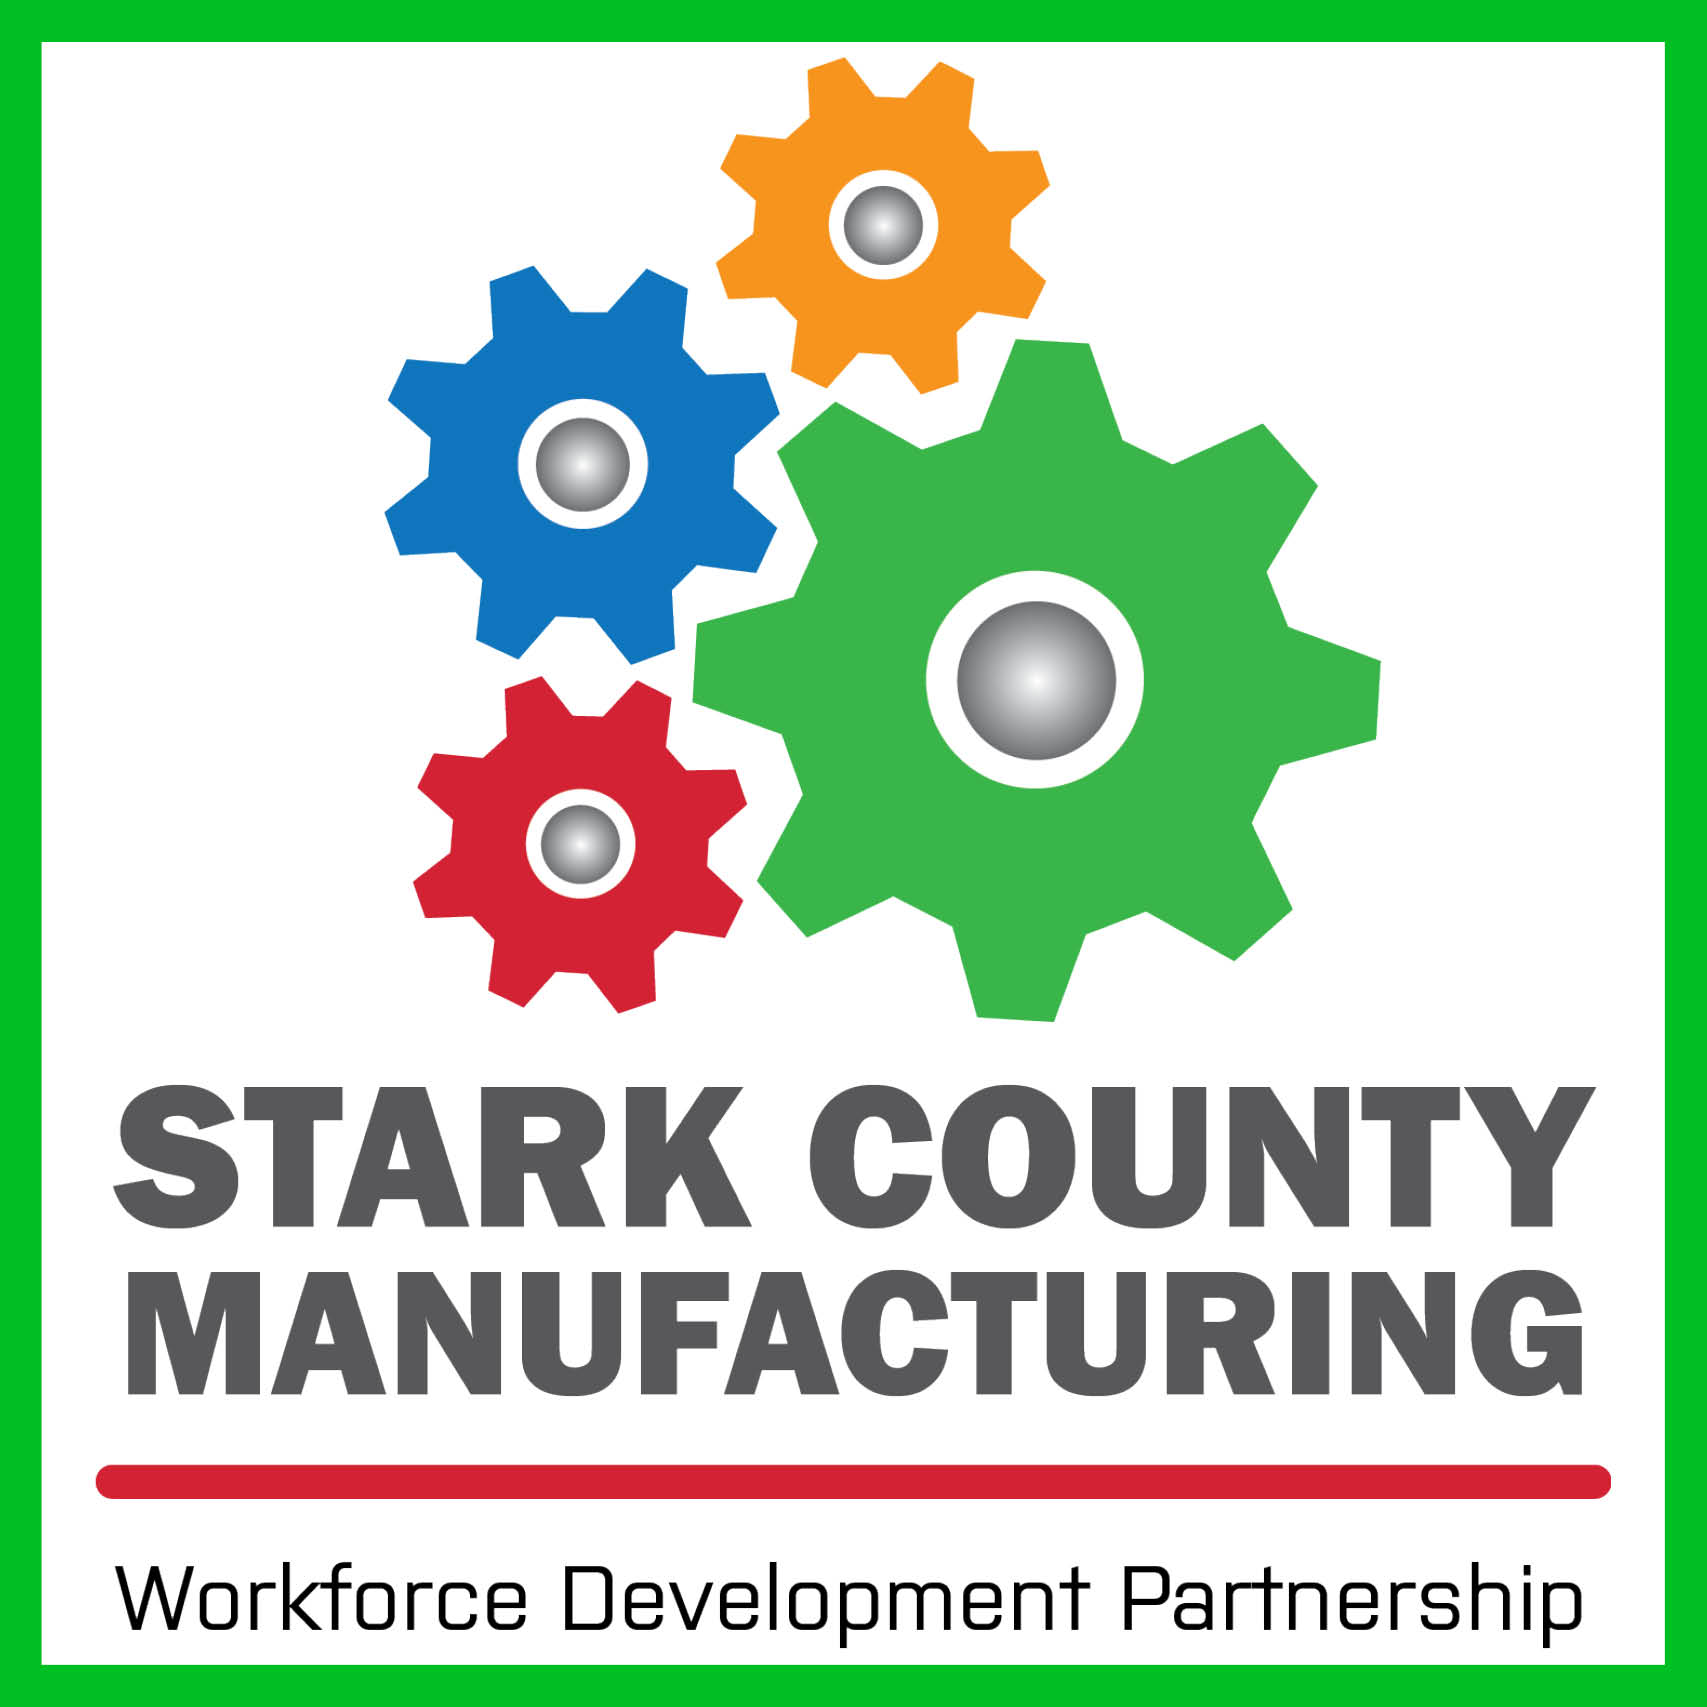 Stark County Manufacturing Workforce Development Partnership Highlight